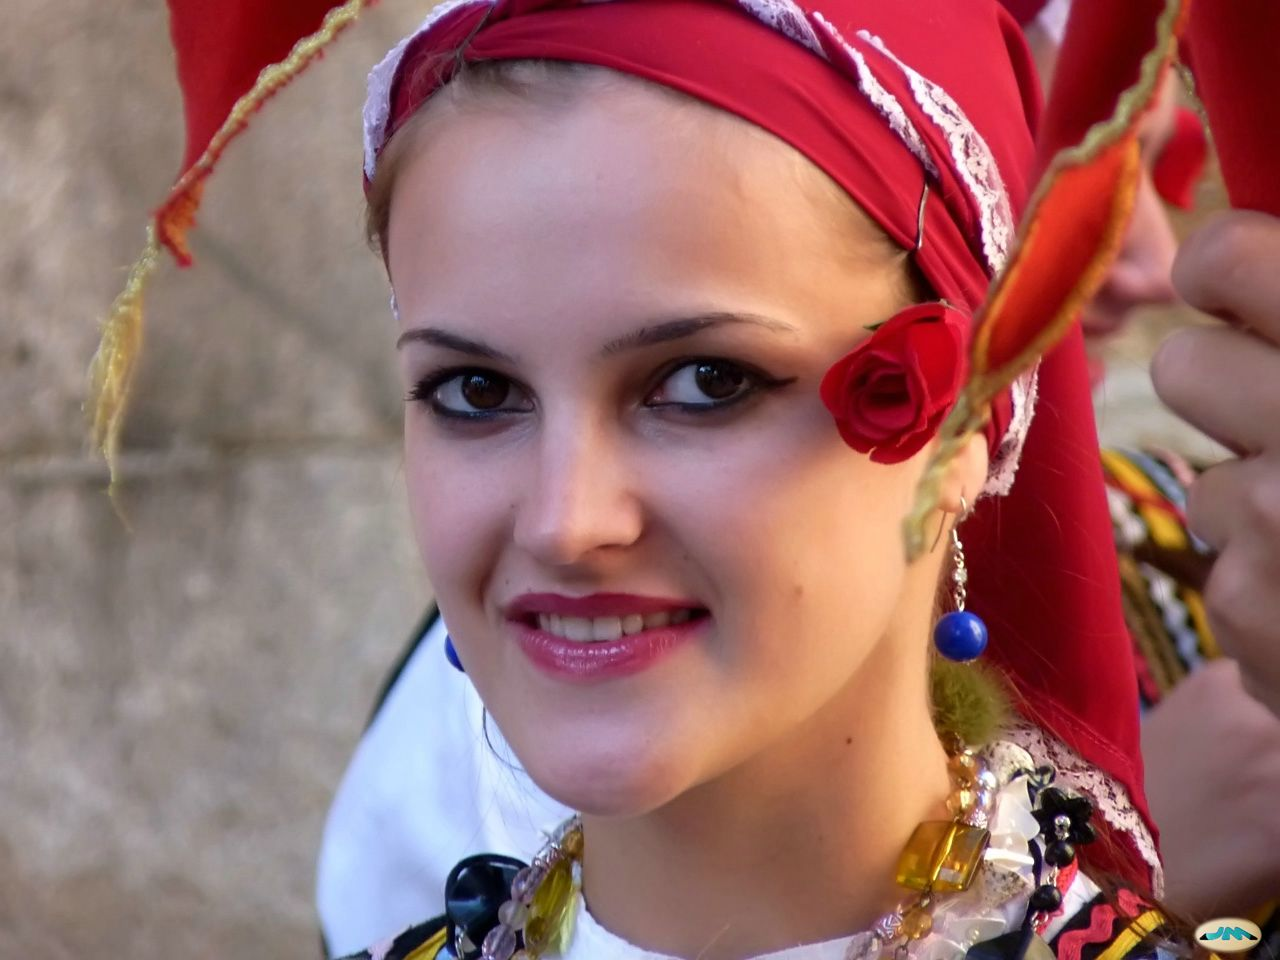 hindu single women in macedonia Slavic majority of macedonia is that albanians who are largest minority in country  are having  modi's cash crackdown failed, indian bank data shows  coming  into the world, the third daughter of a tired 28-year-old albanian woman, samije  jusufi  there are not enough macedonians to fill one class.